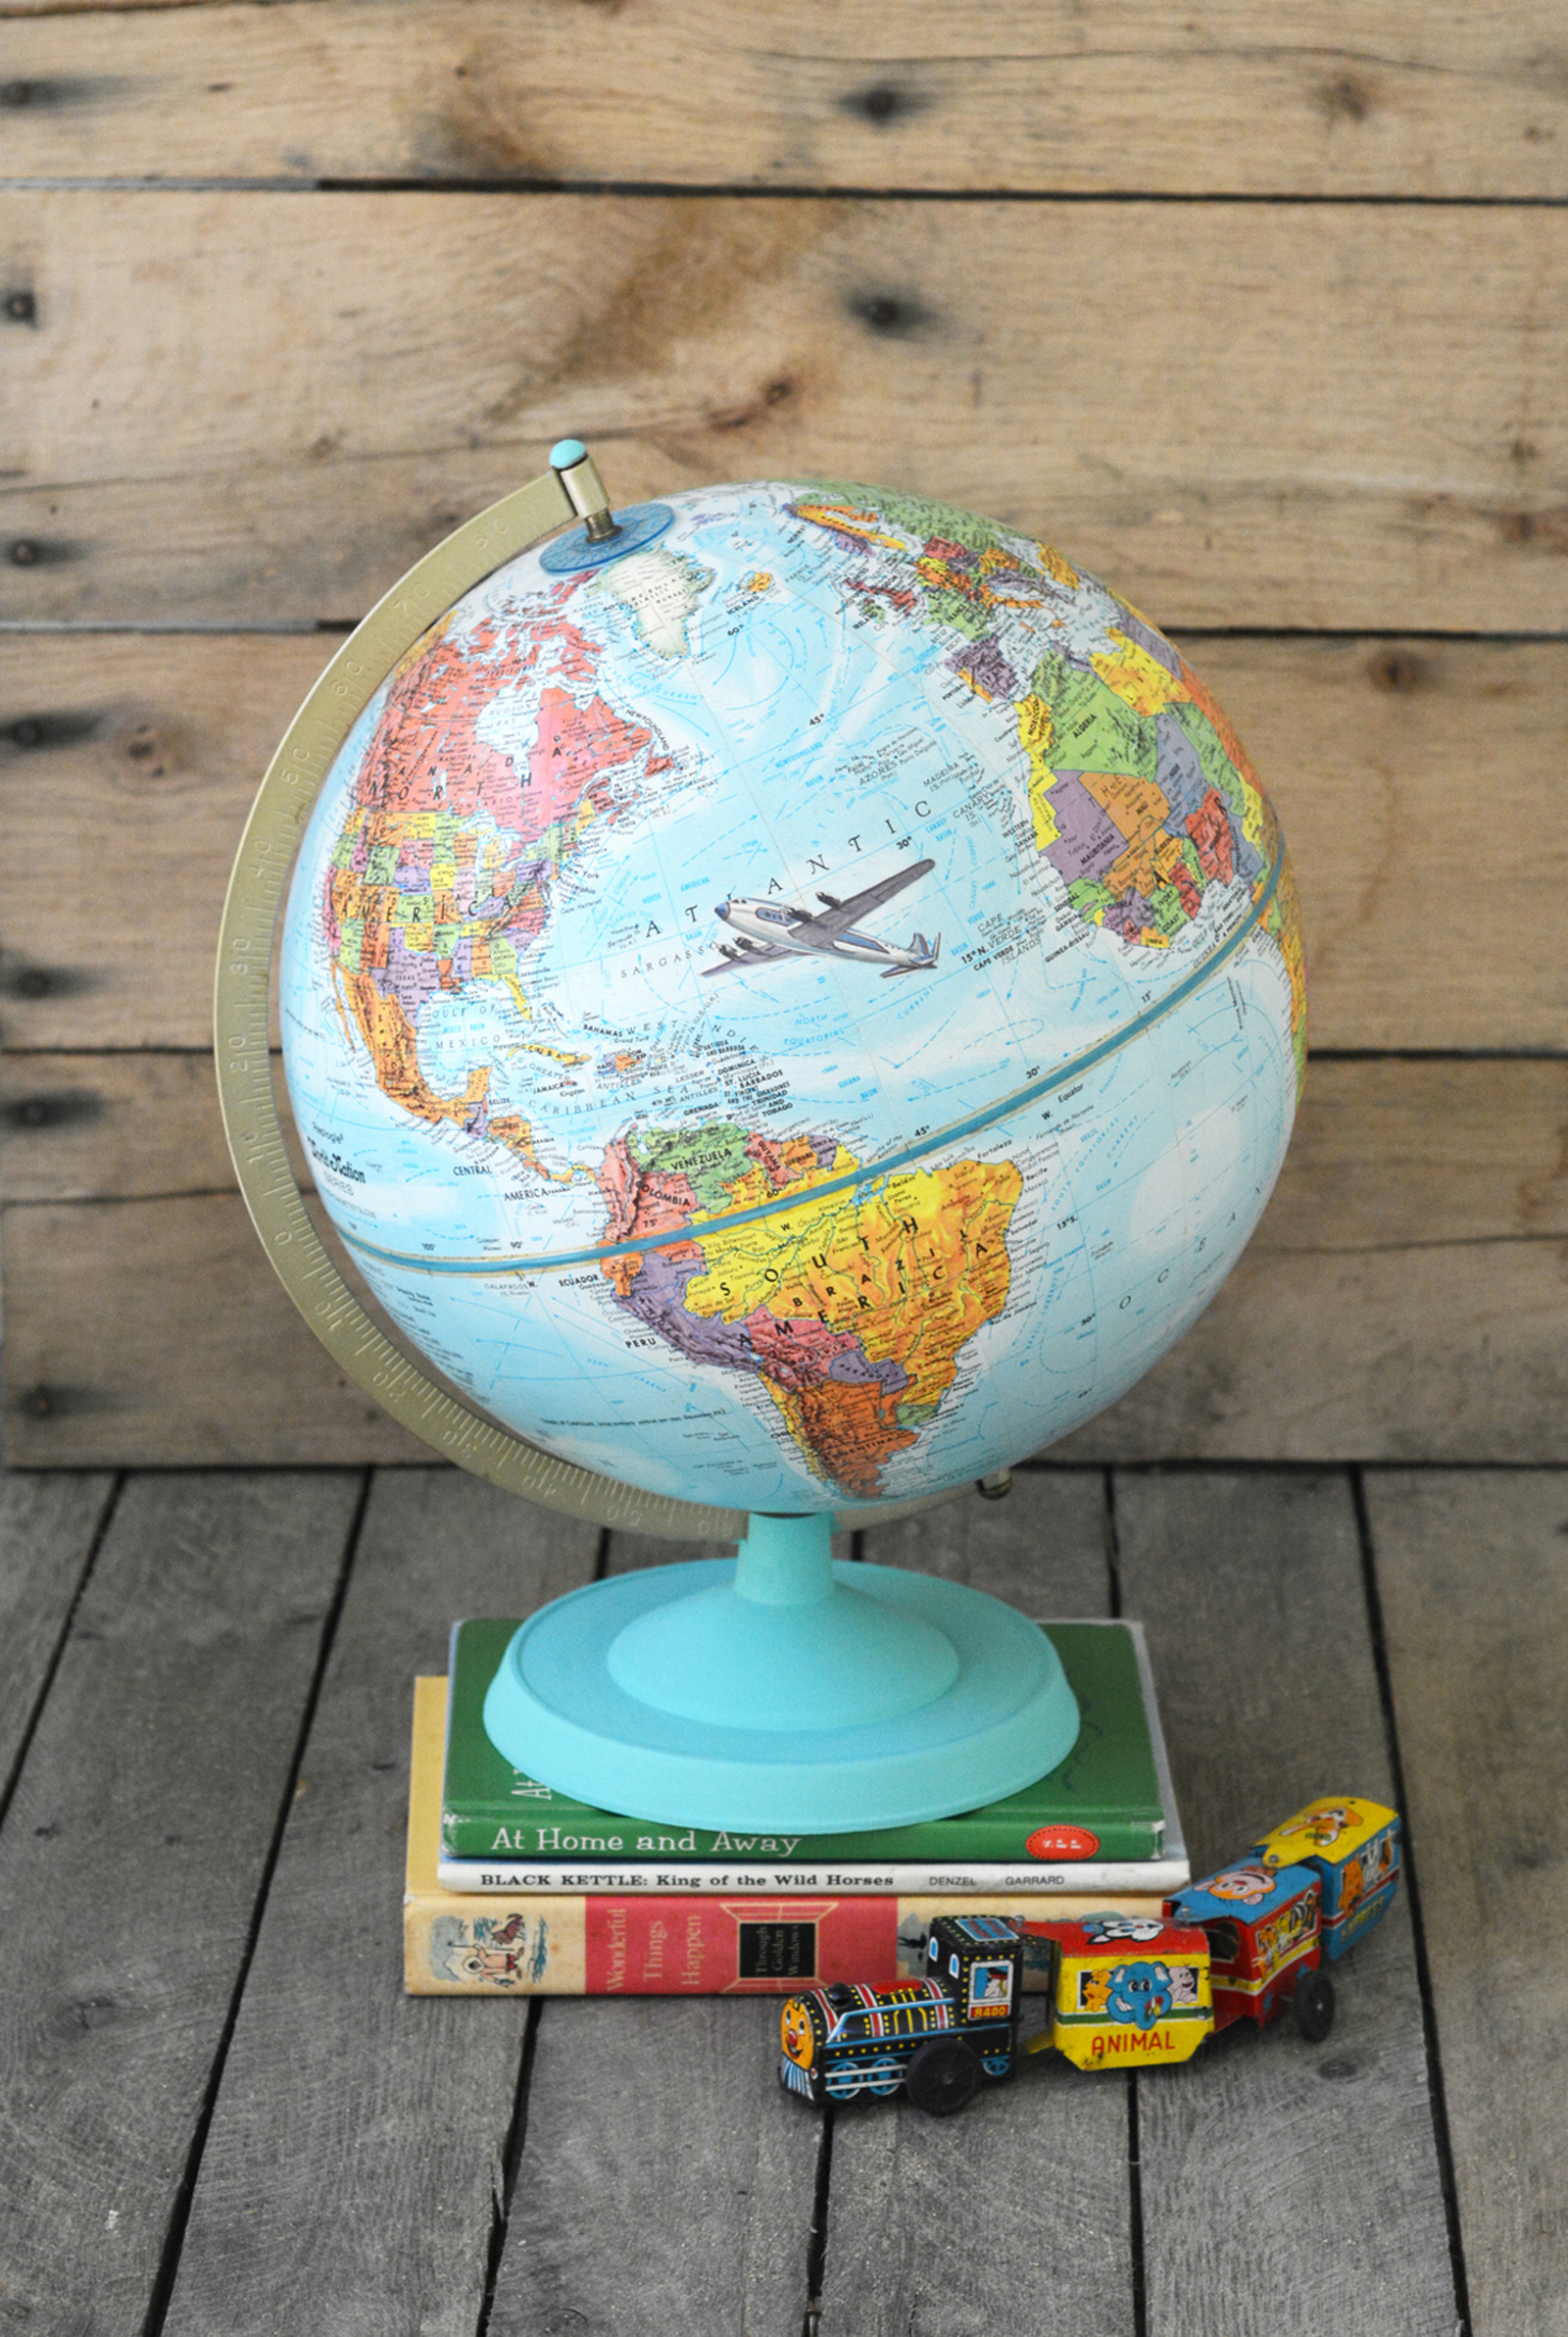 Learn how to customize a vintage globe with your favorite images from children's books - this is such a unique home decor project!